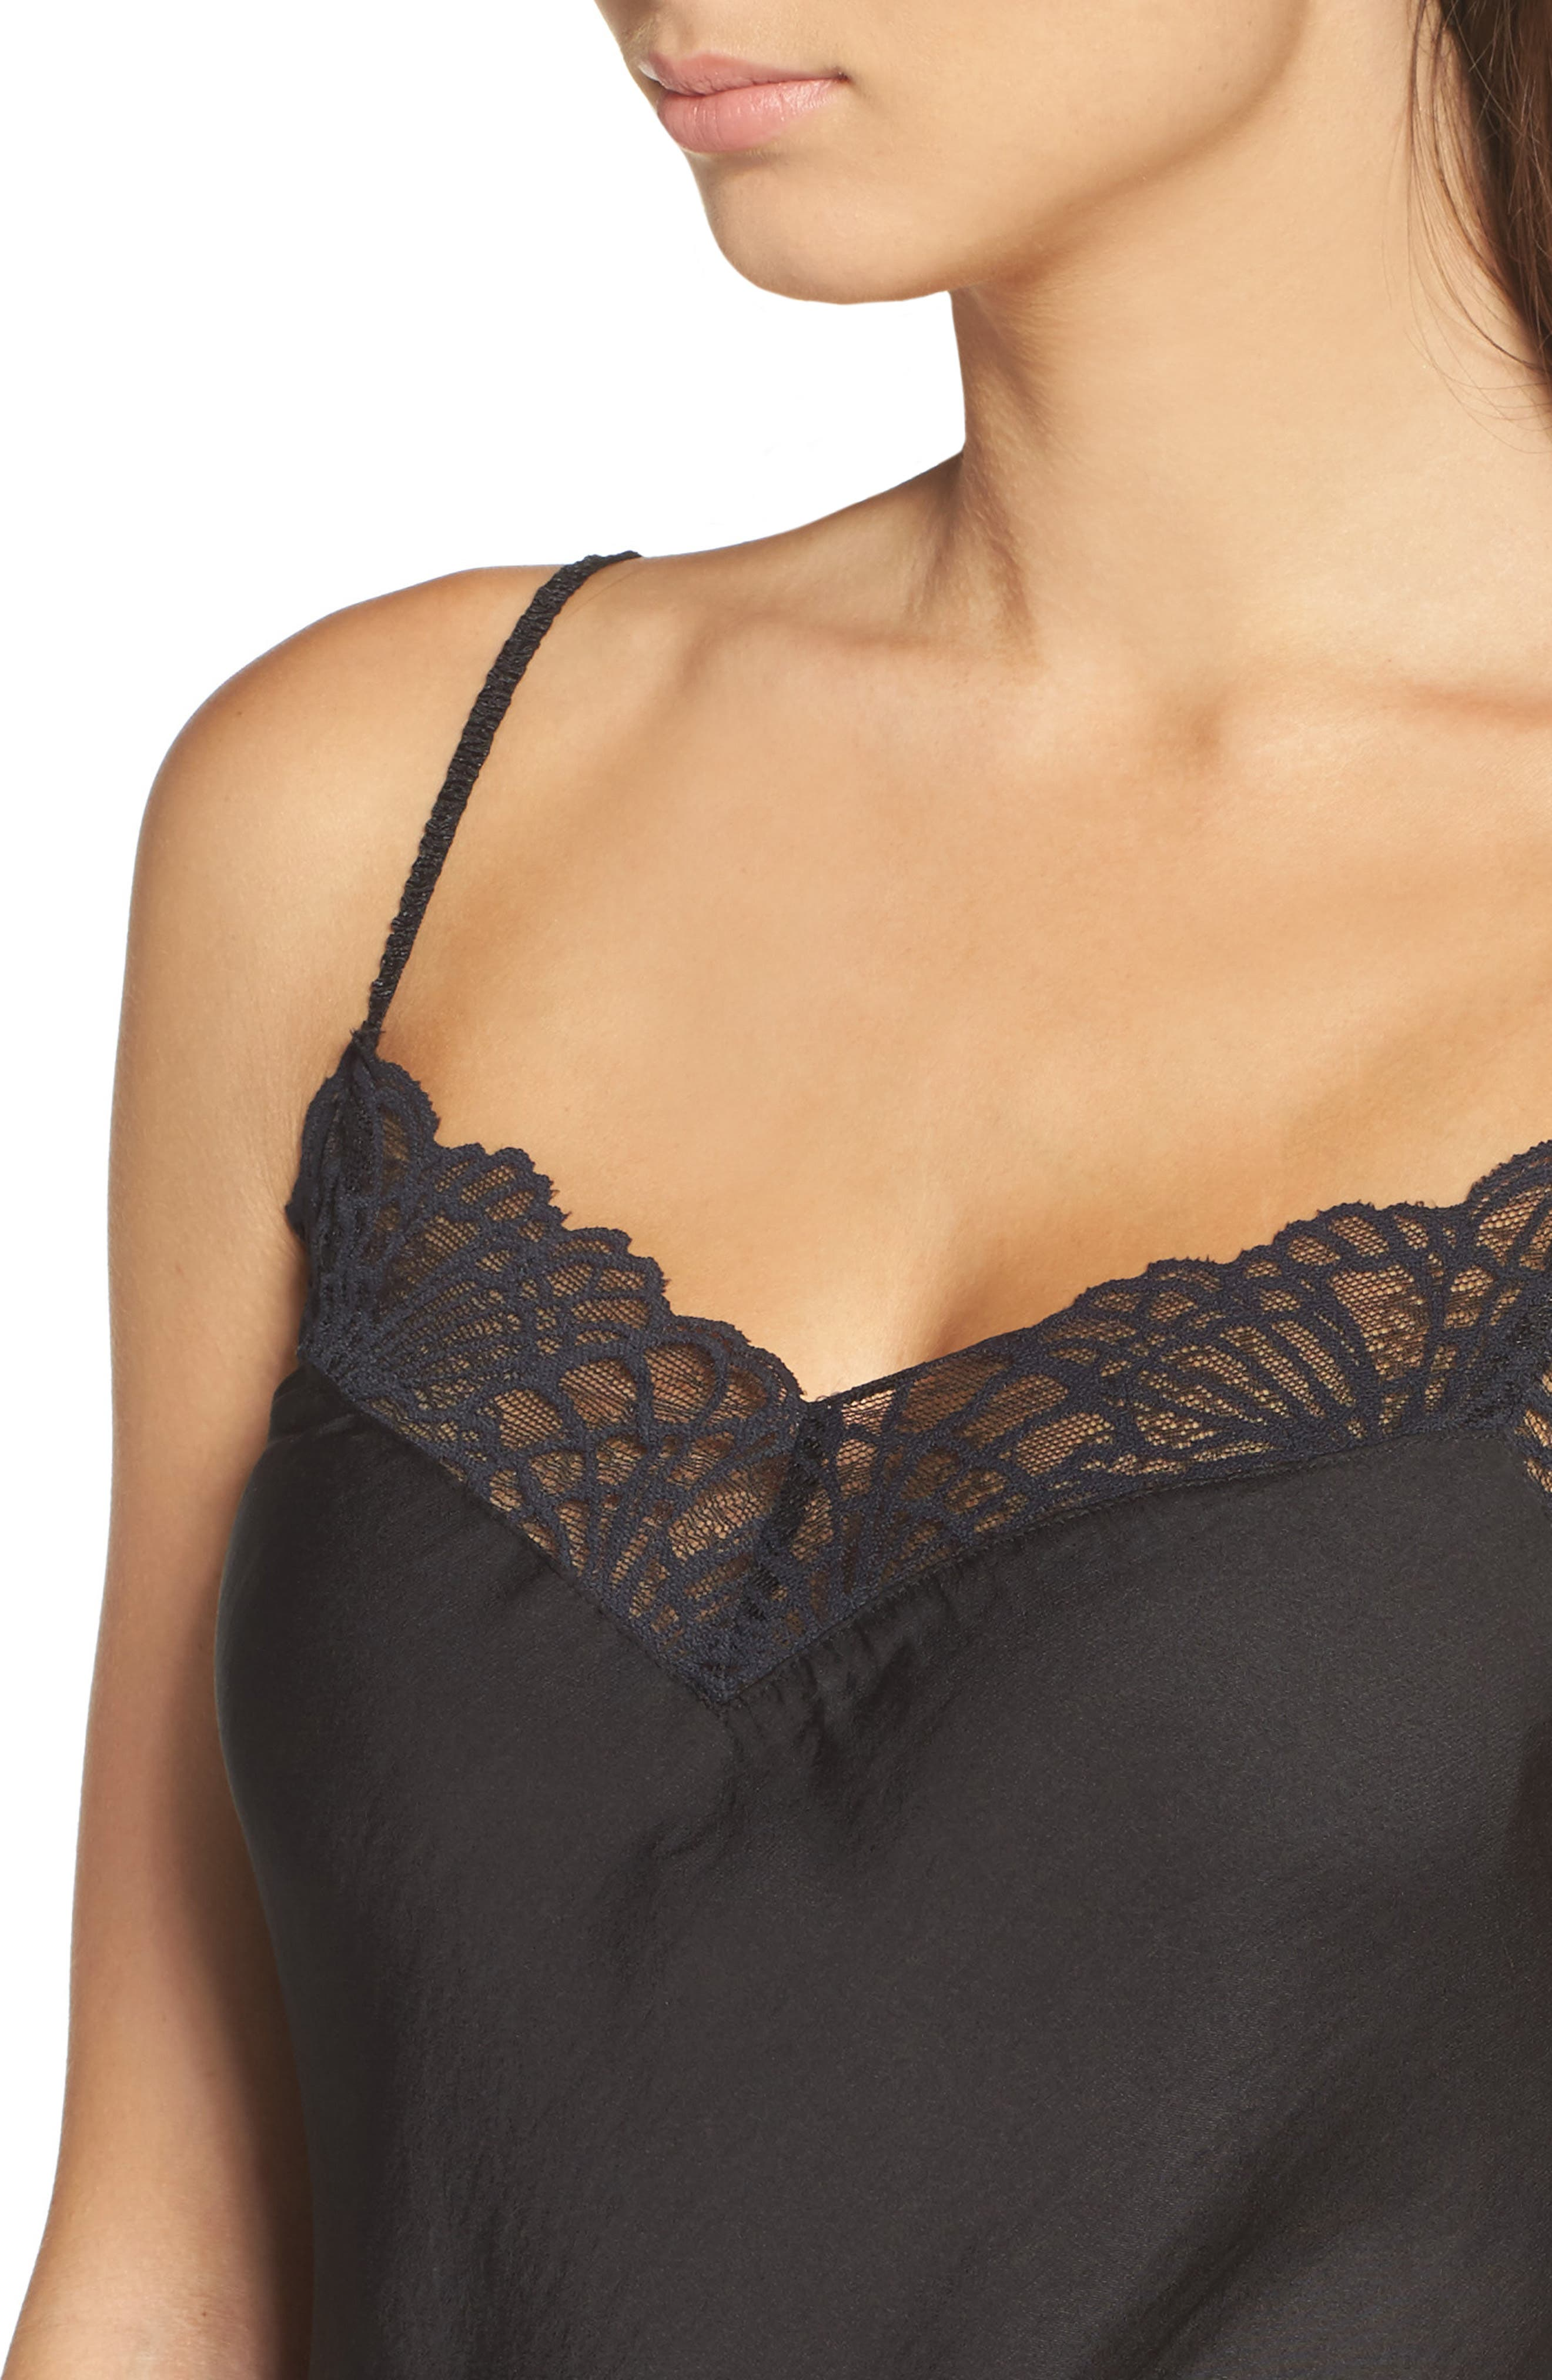 Colette Chemise,                             Alternate thumbnail 5, color,                             Black